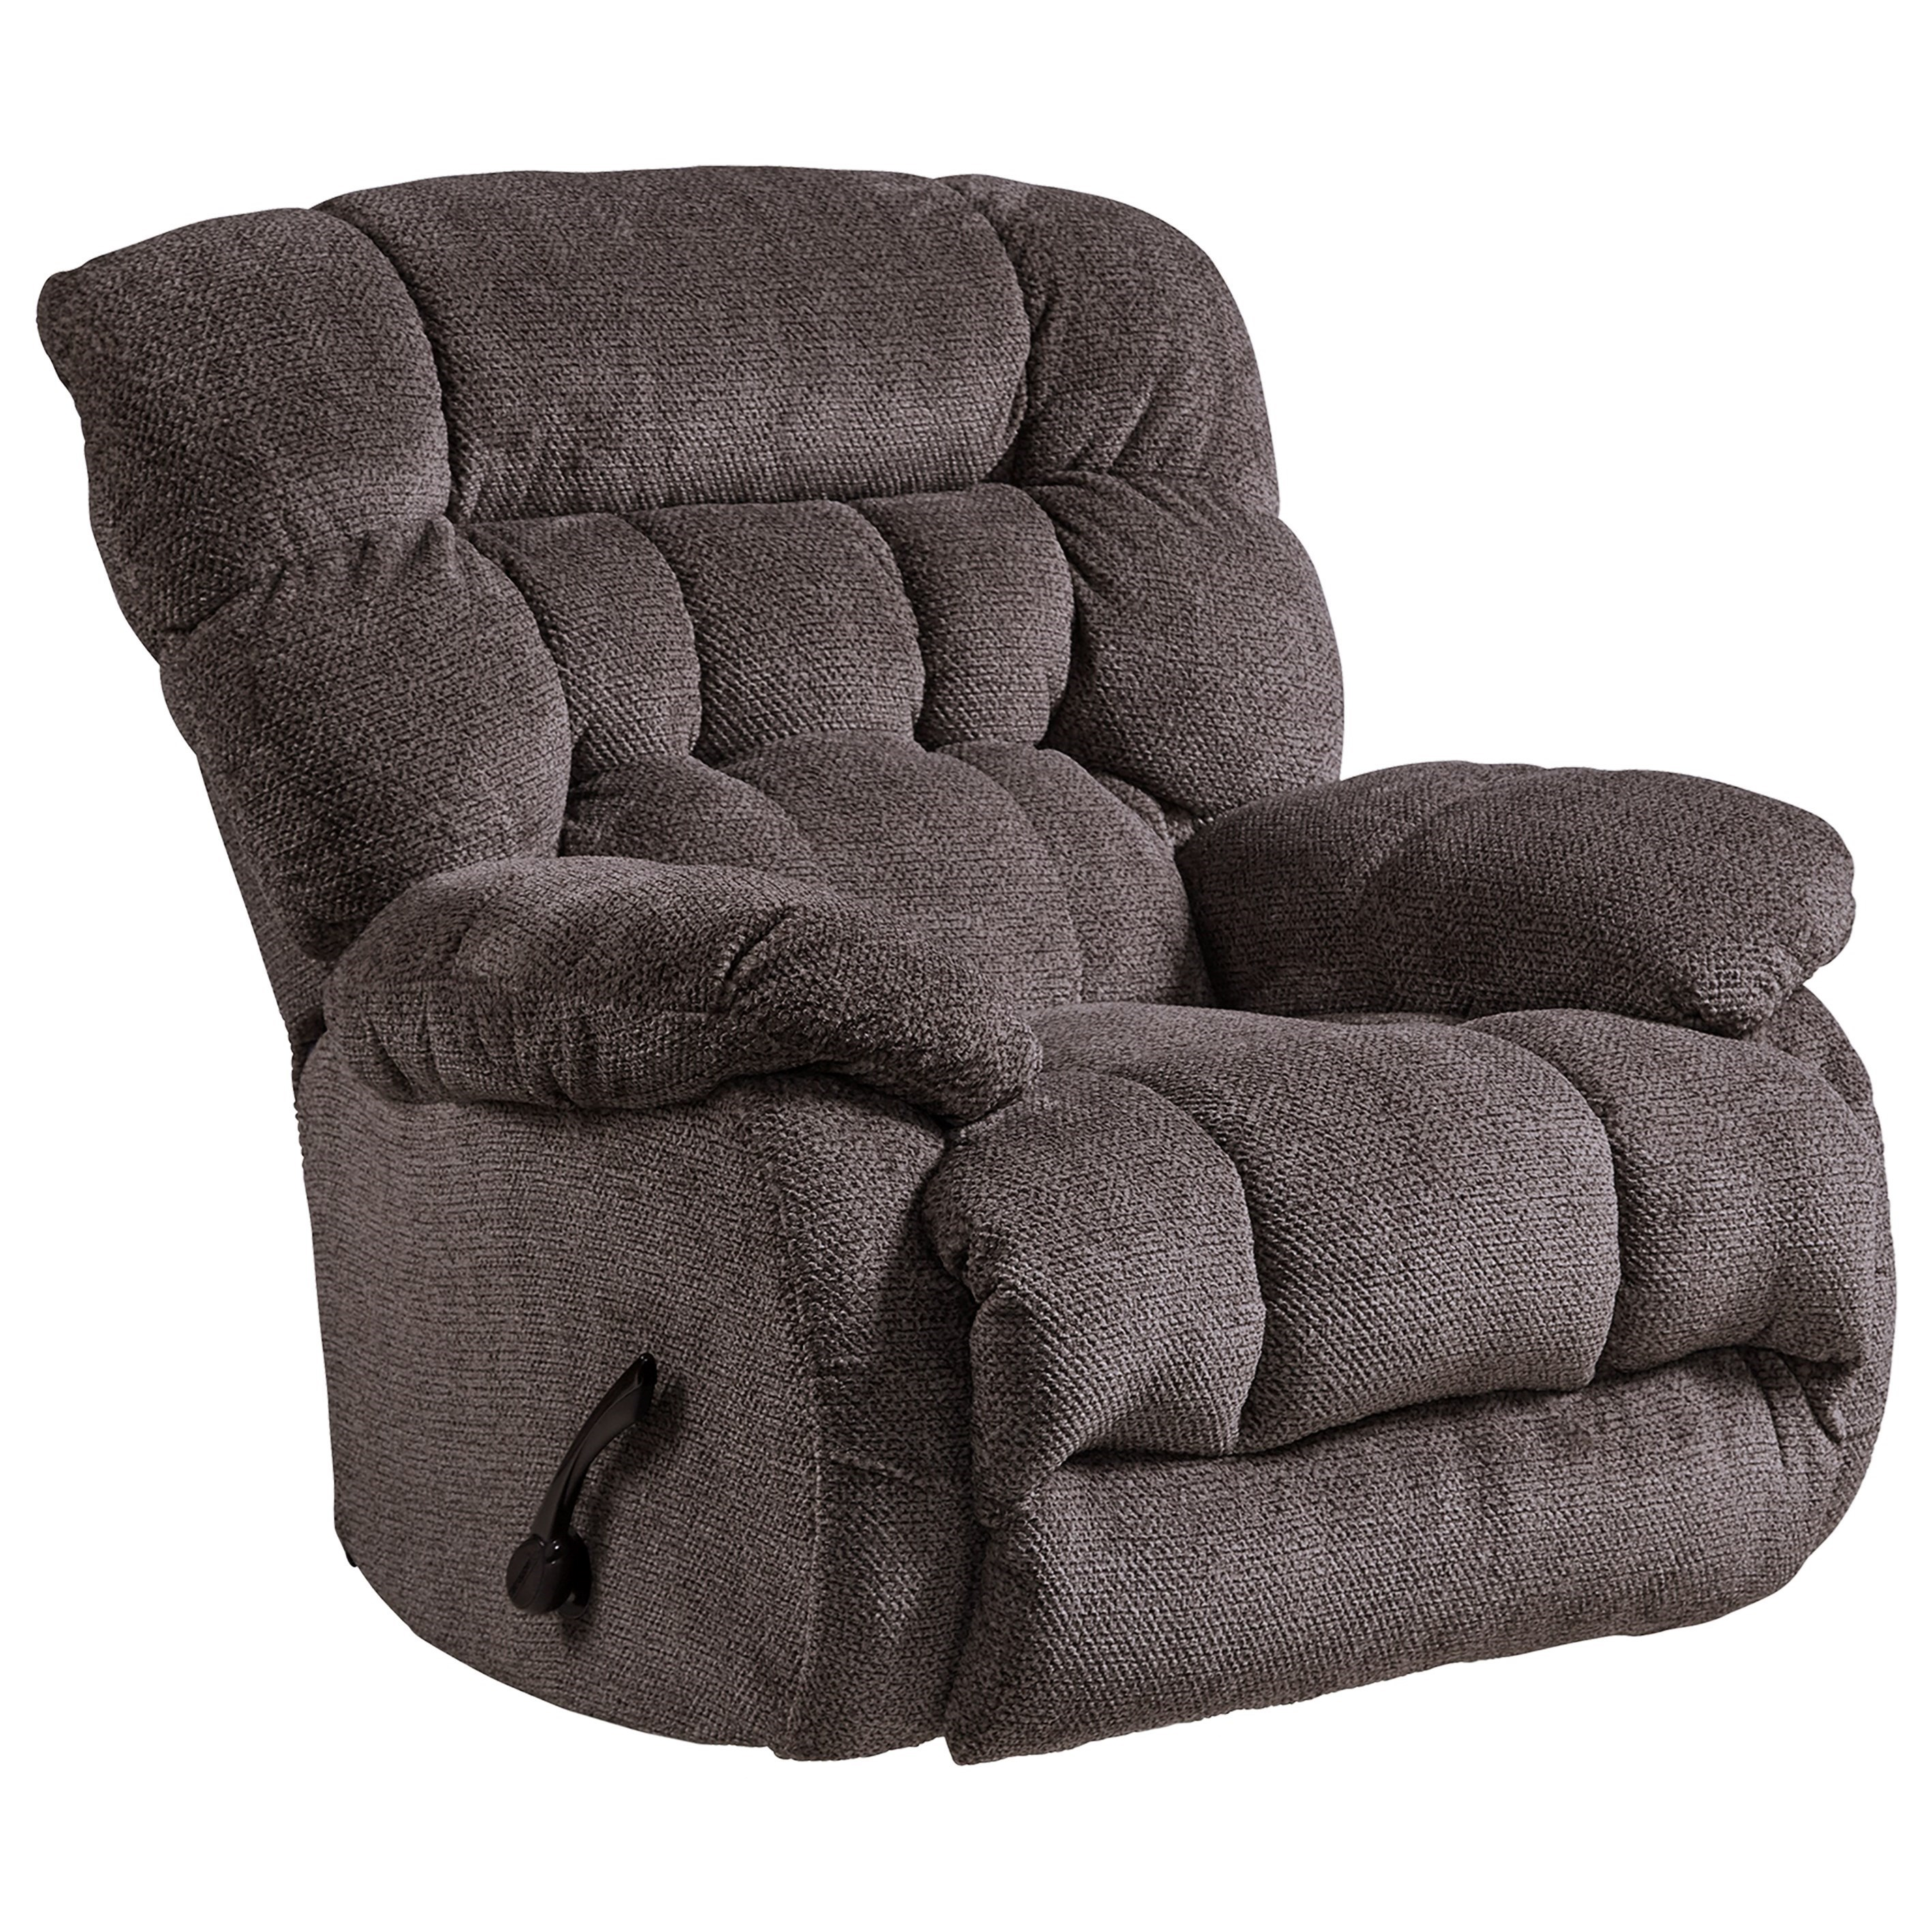 Daly Rocker Recliner by Catnapper at Northeast Factory Direct